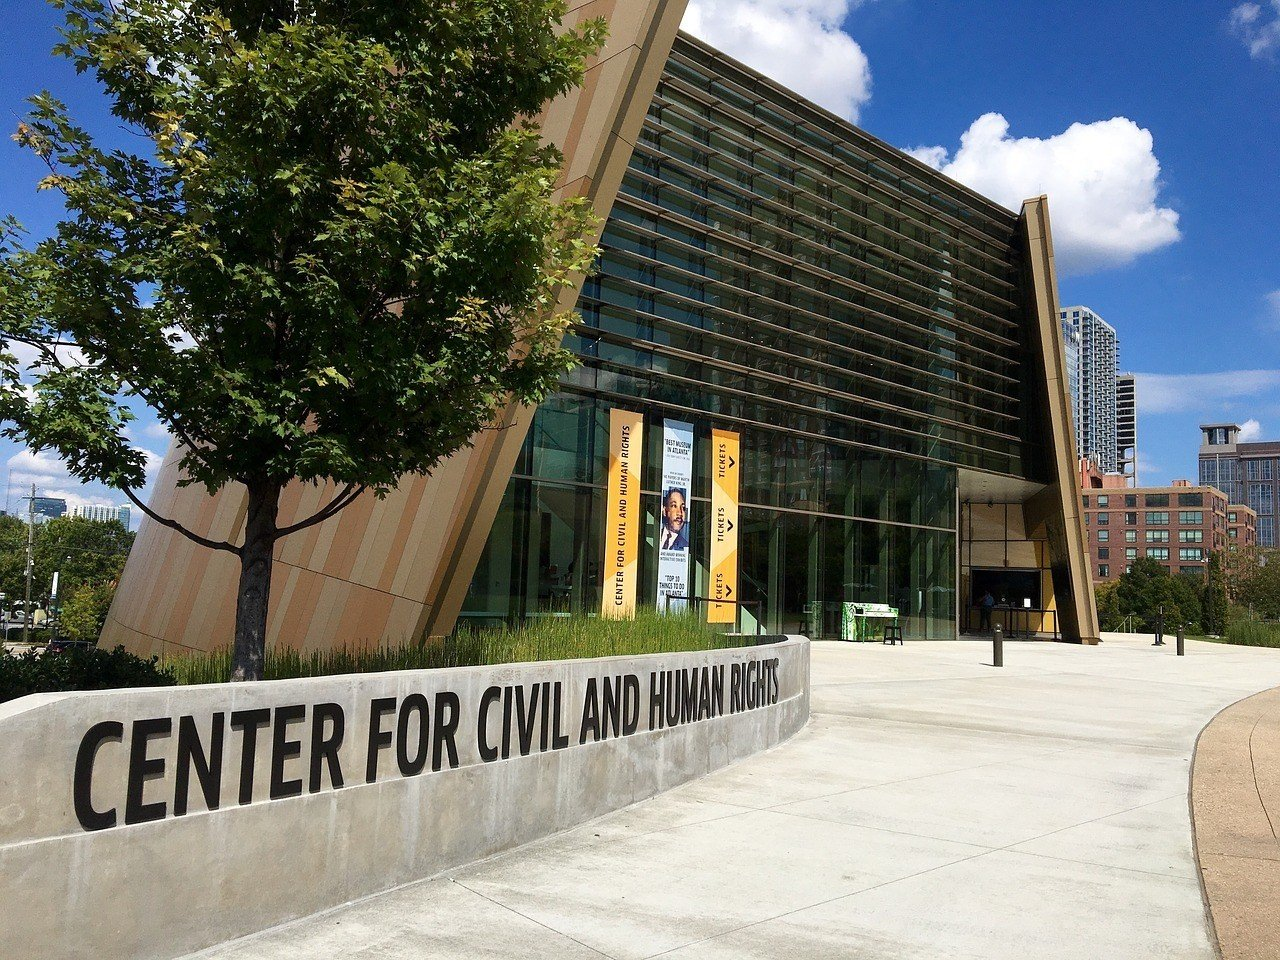 Center for Civil and Human Rights Atlanta